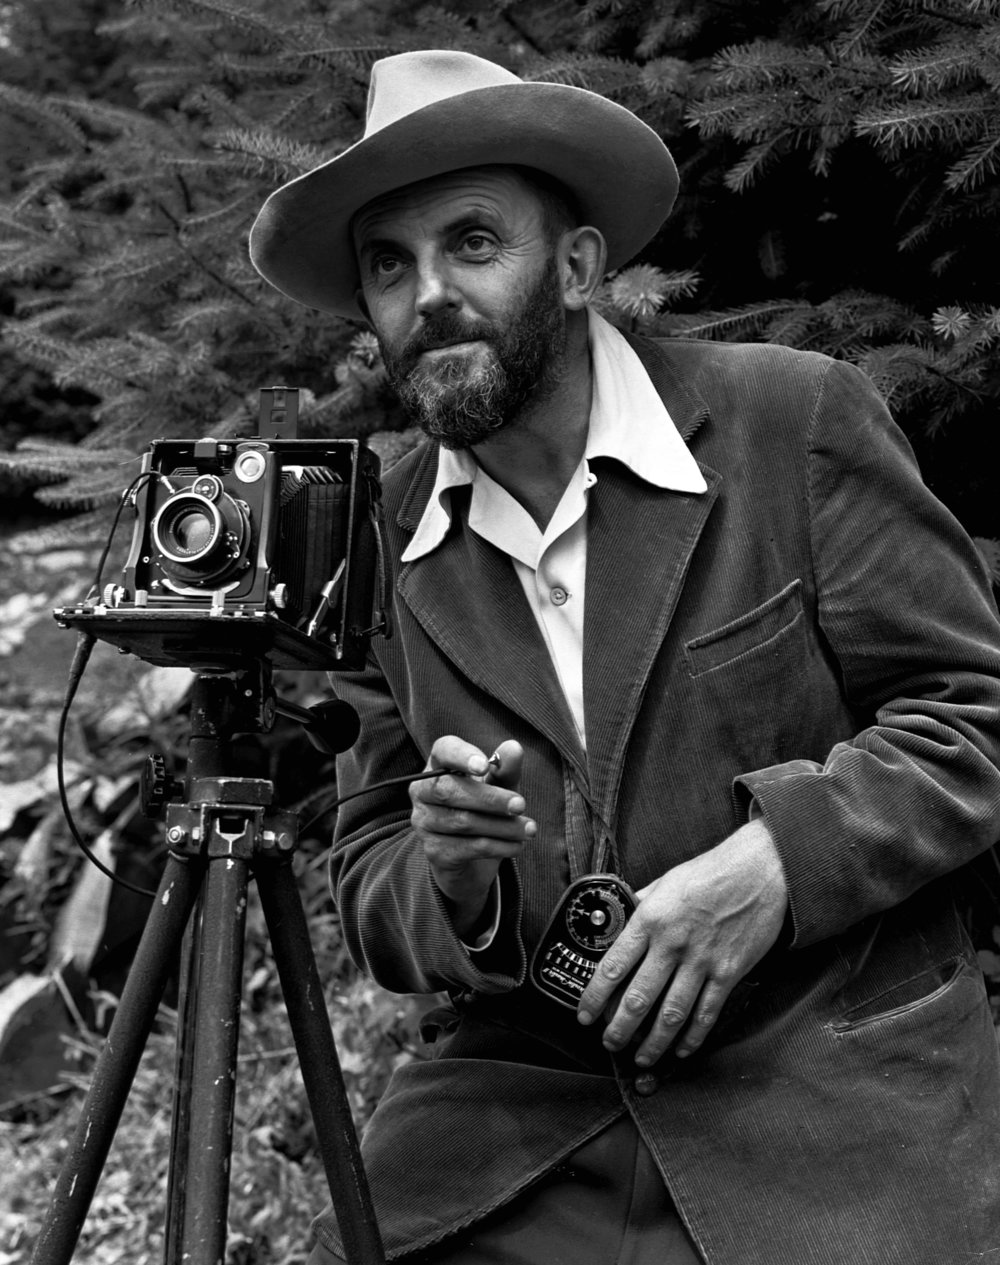 Ansel Adams with his Camera